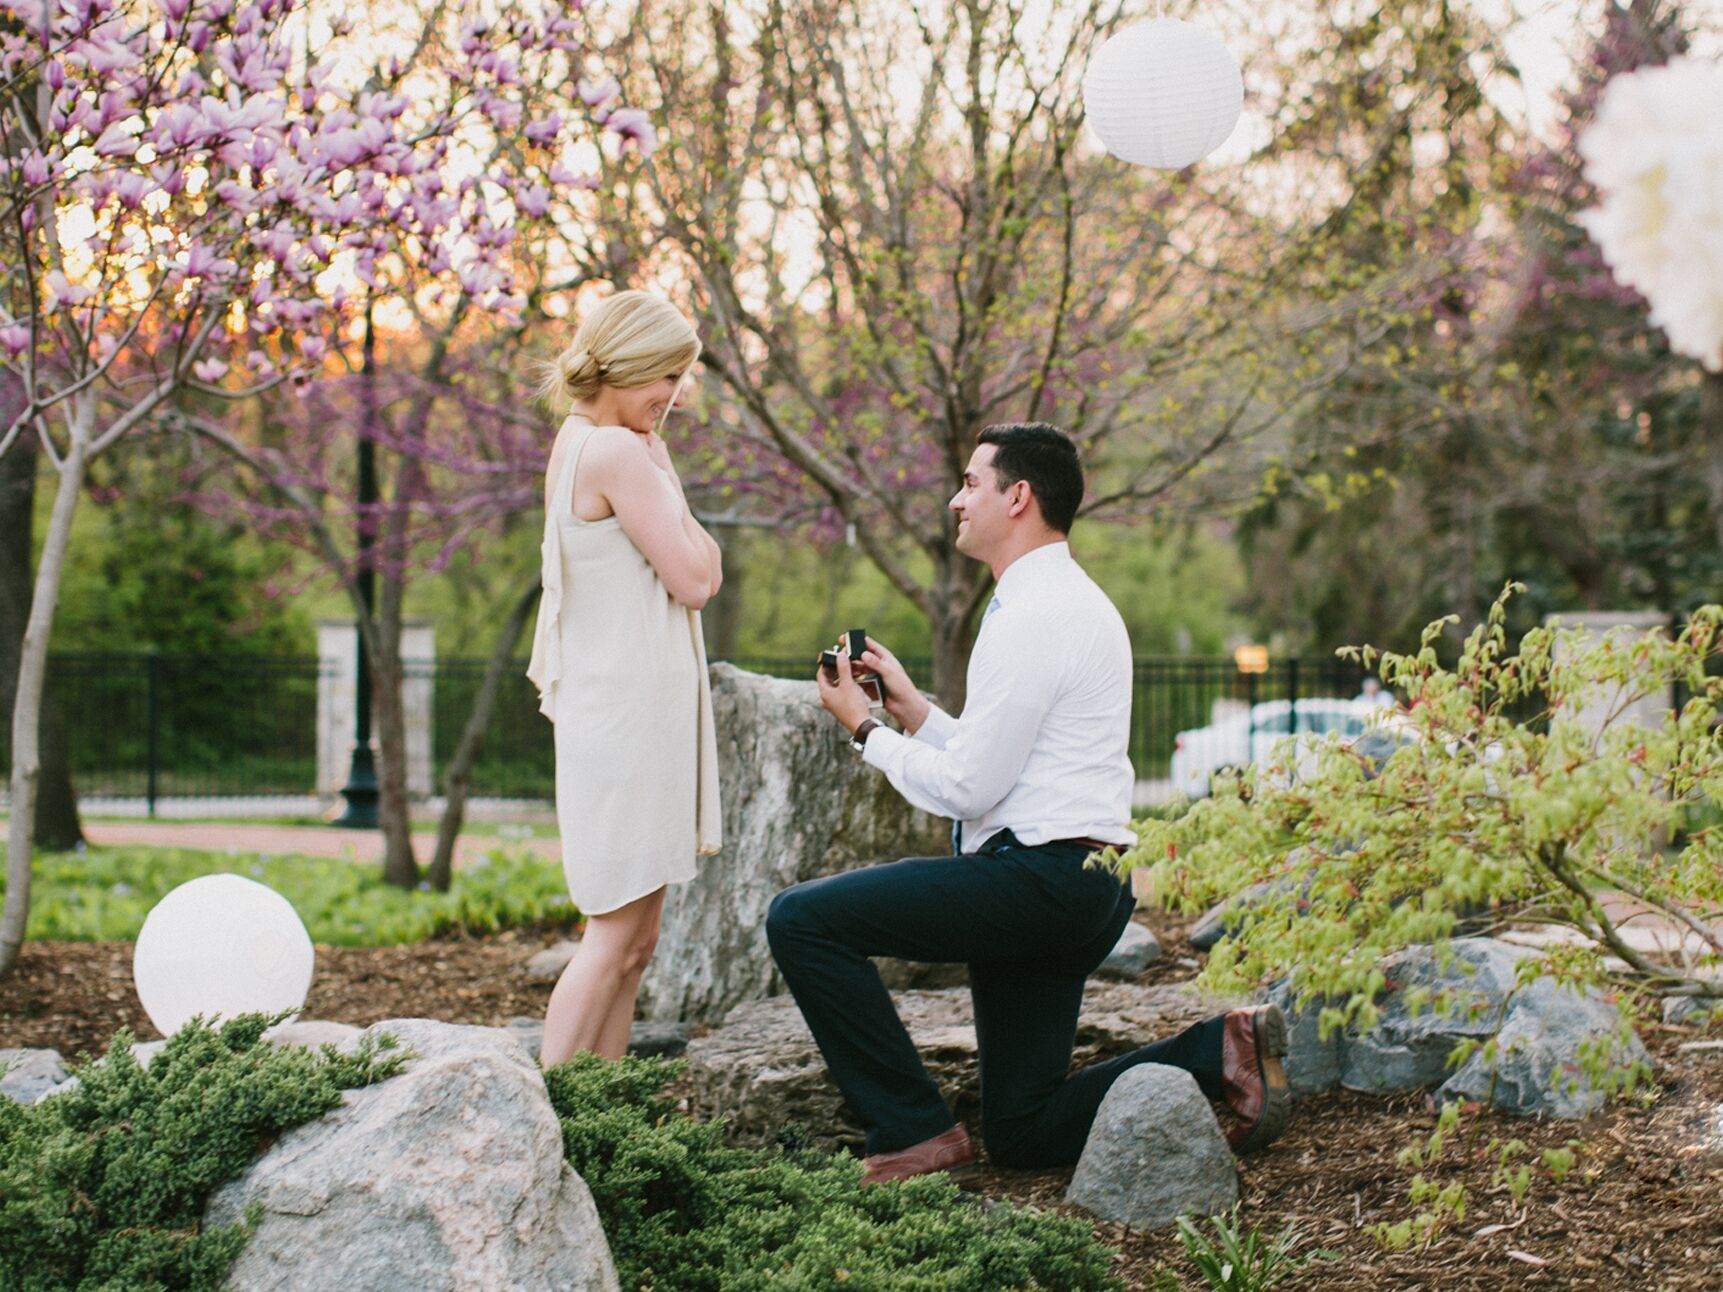 proposal marriage proposals checklist propose spring without guide washburn meredith sc